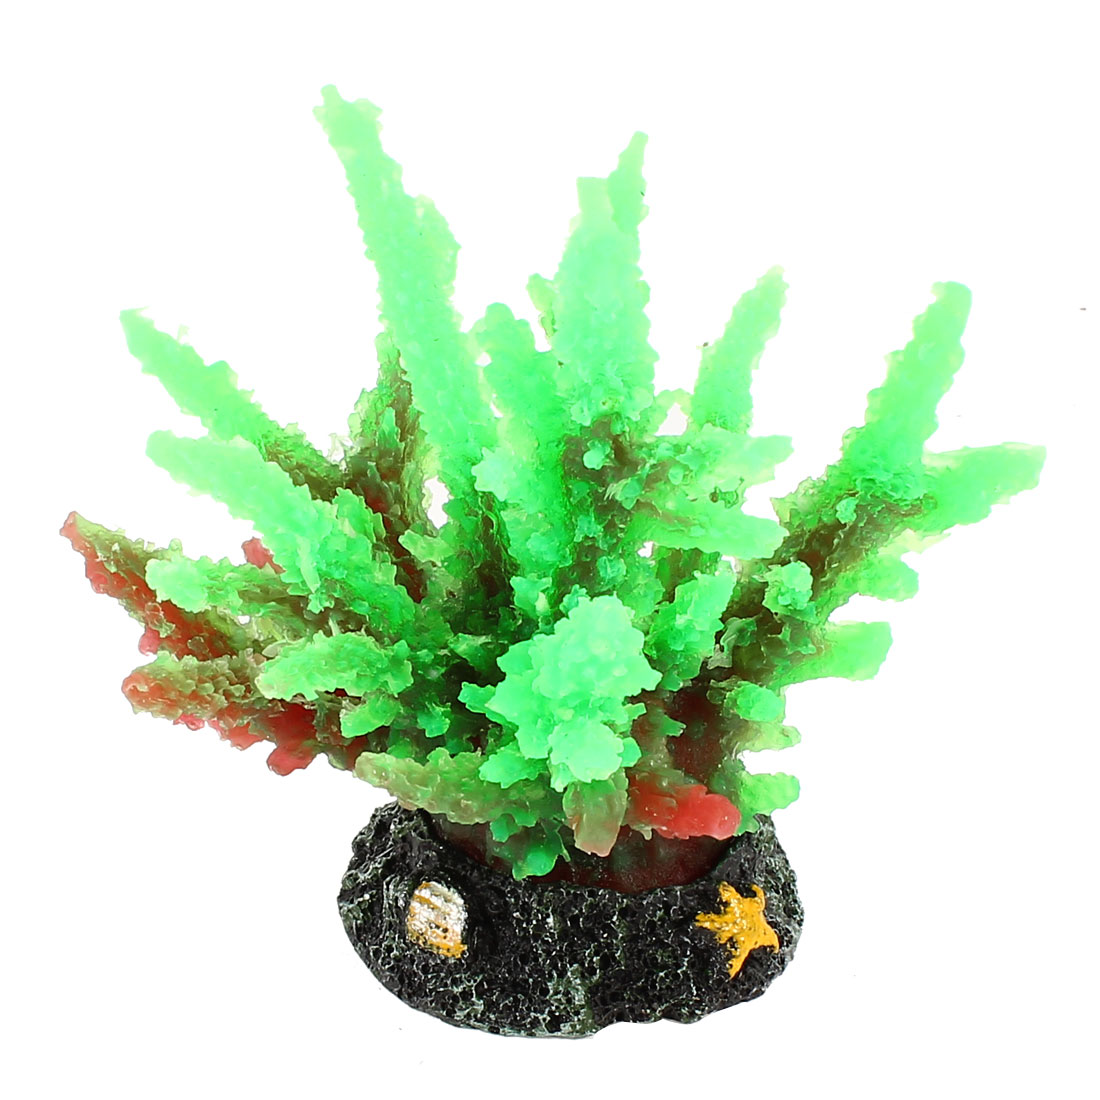 "Green Silicone Ceramic Base Artificial Coral 4.1"" High for Aquarium"